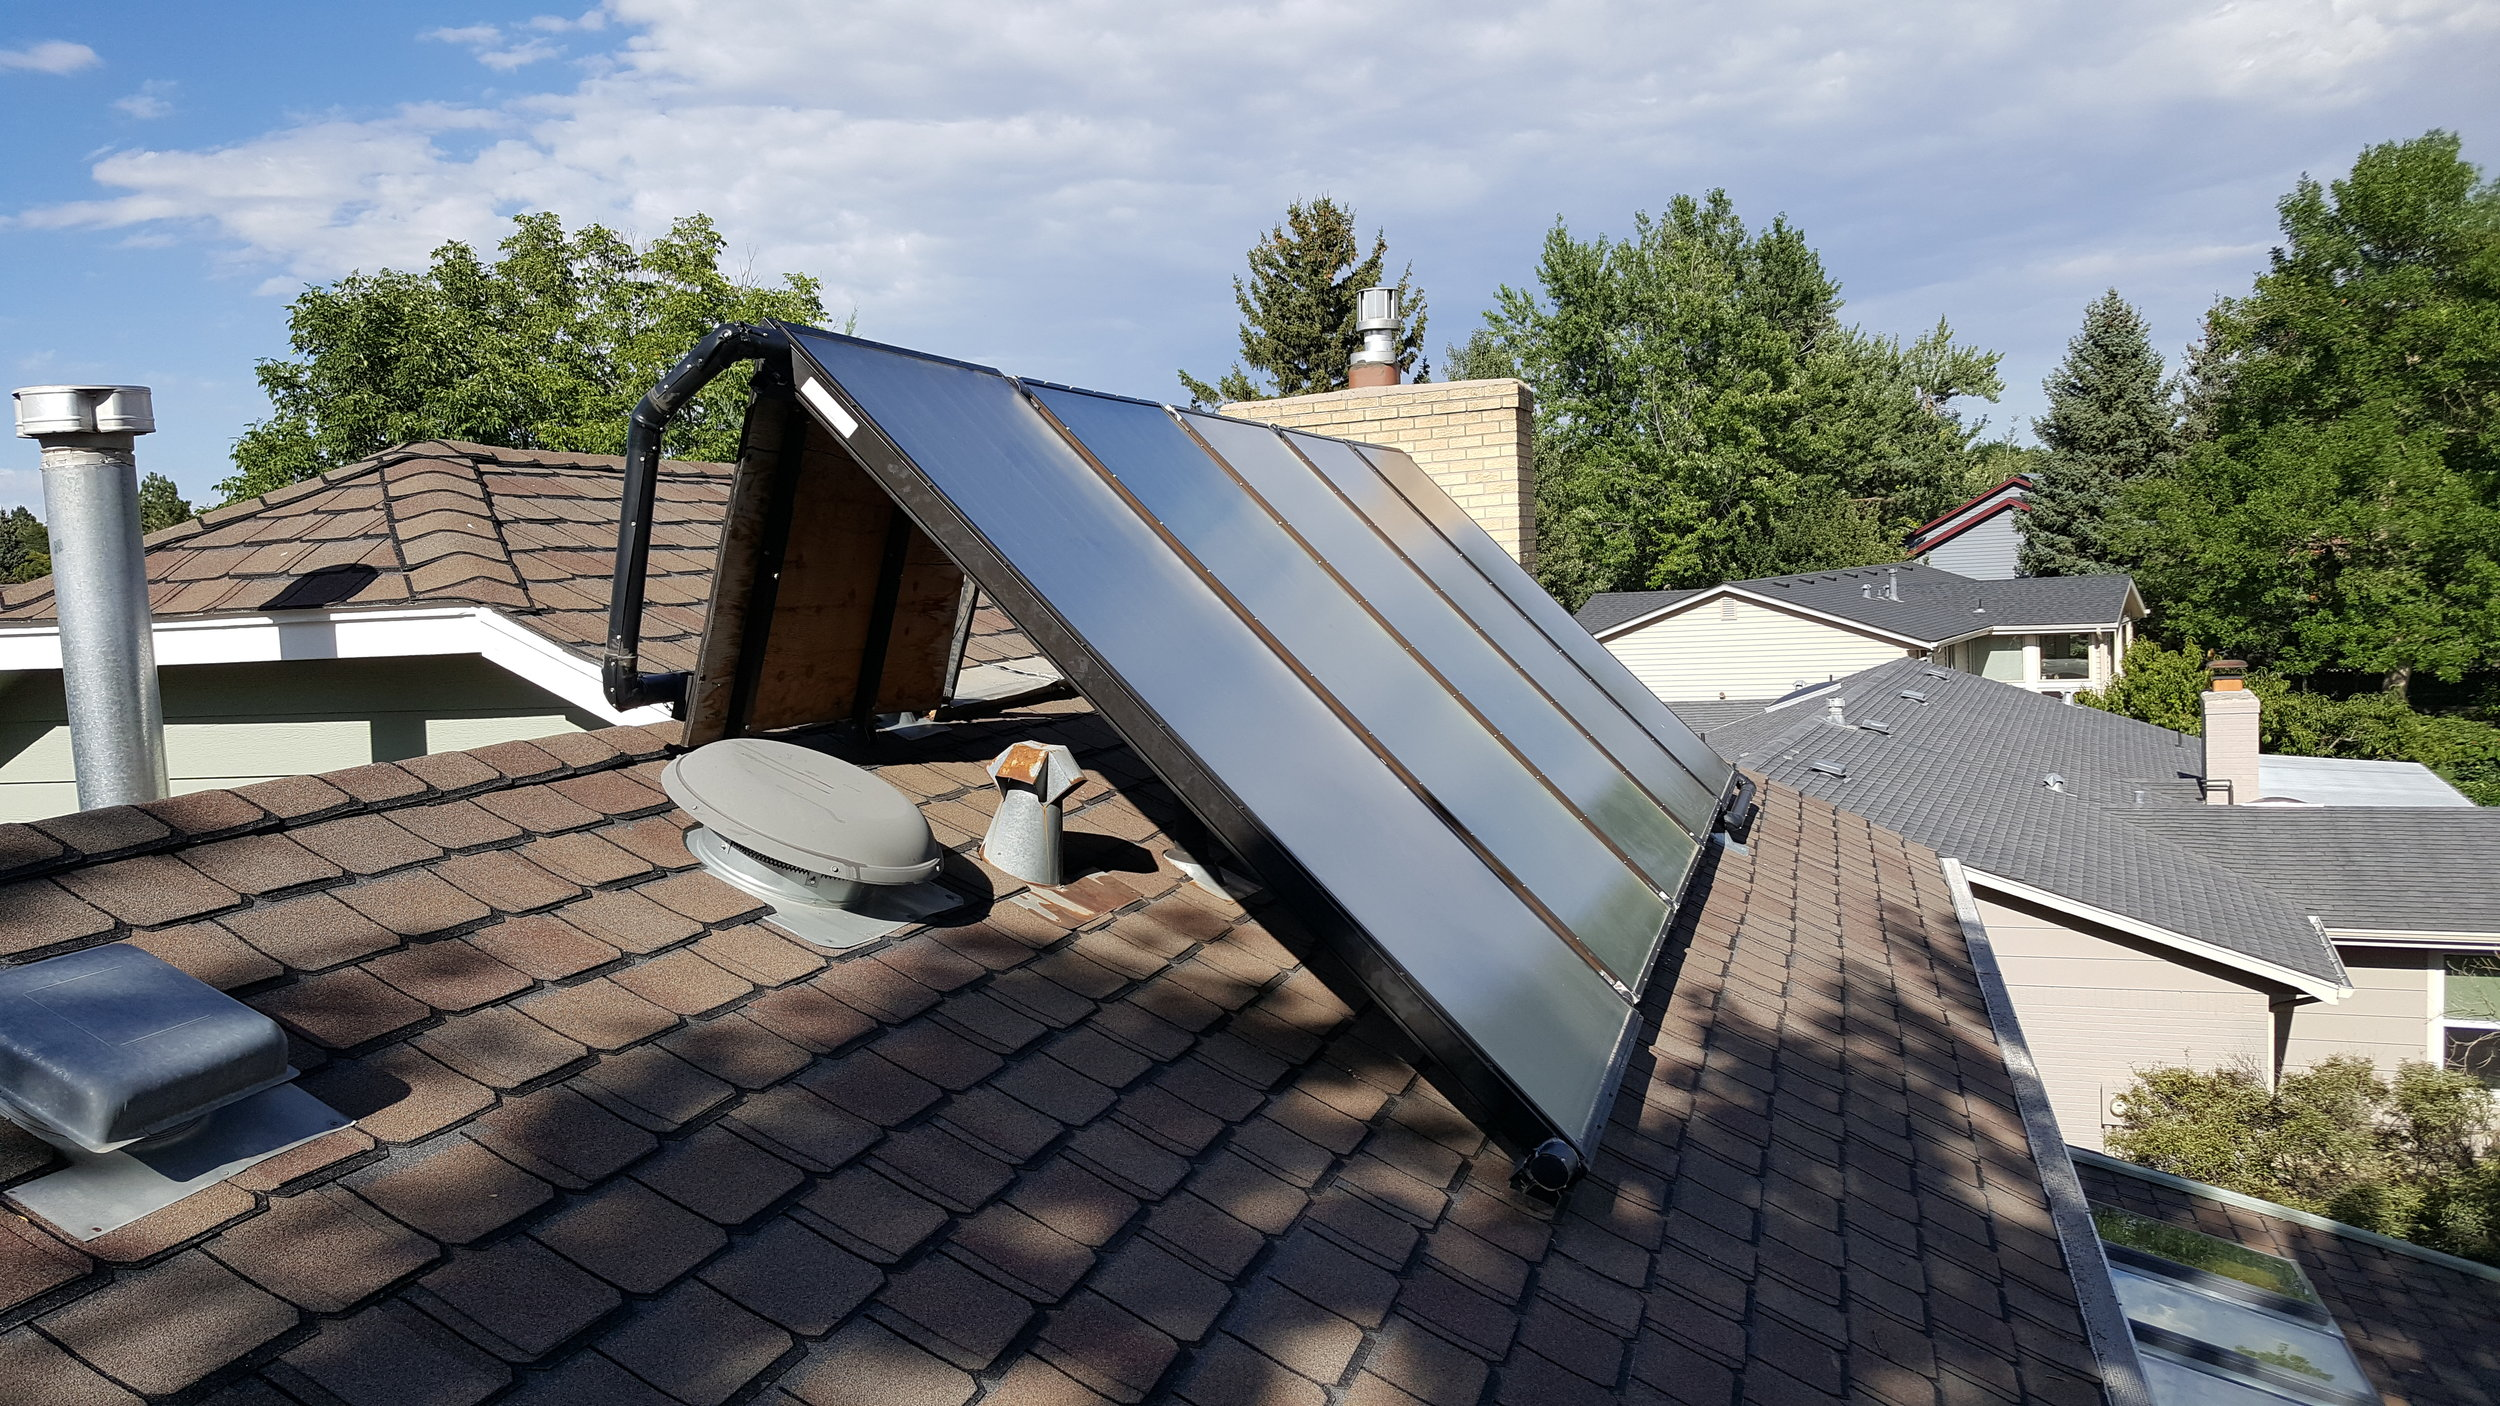 Tilt up solar hot water system in Boulder, Colorado